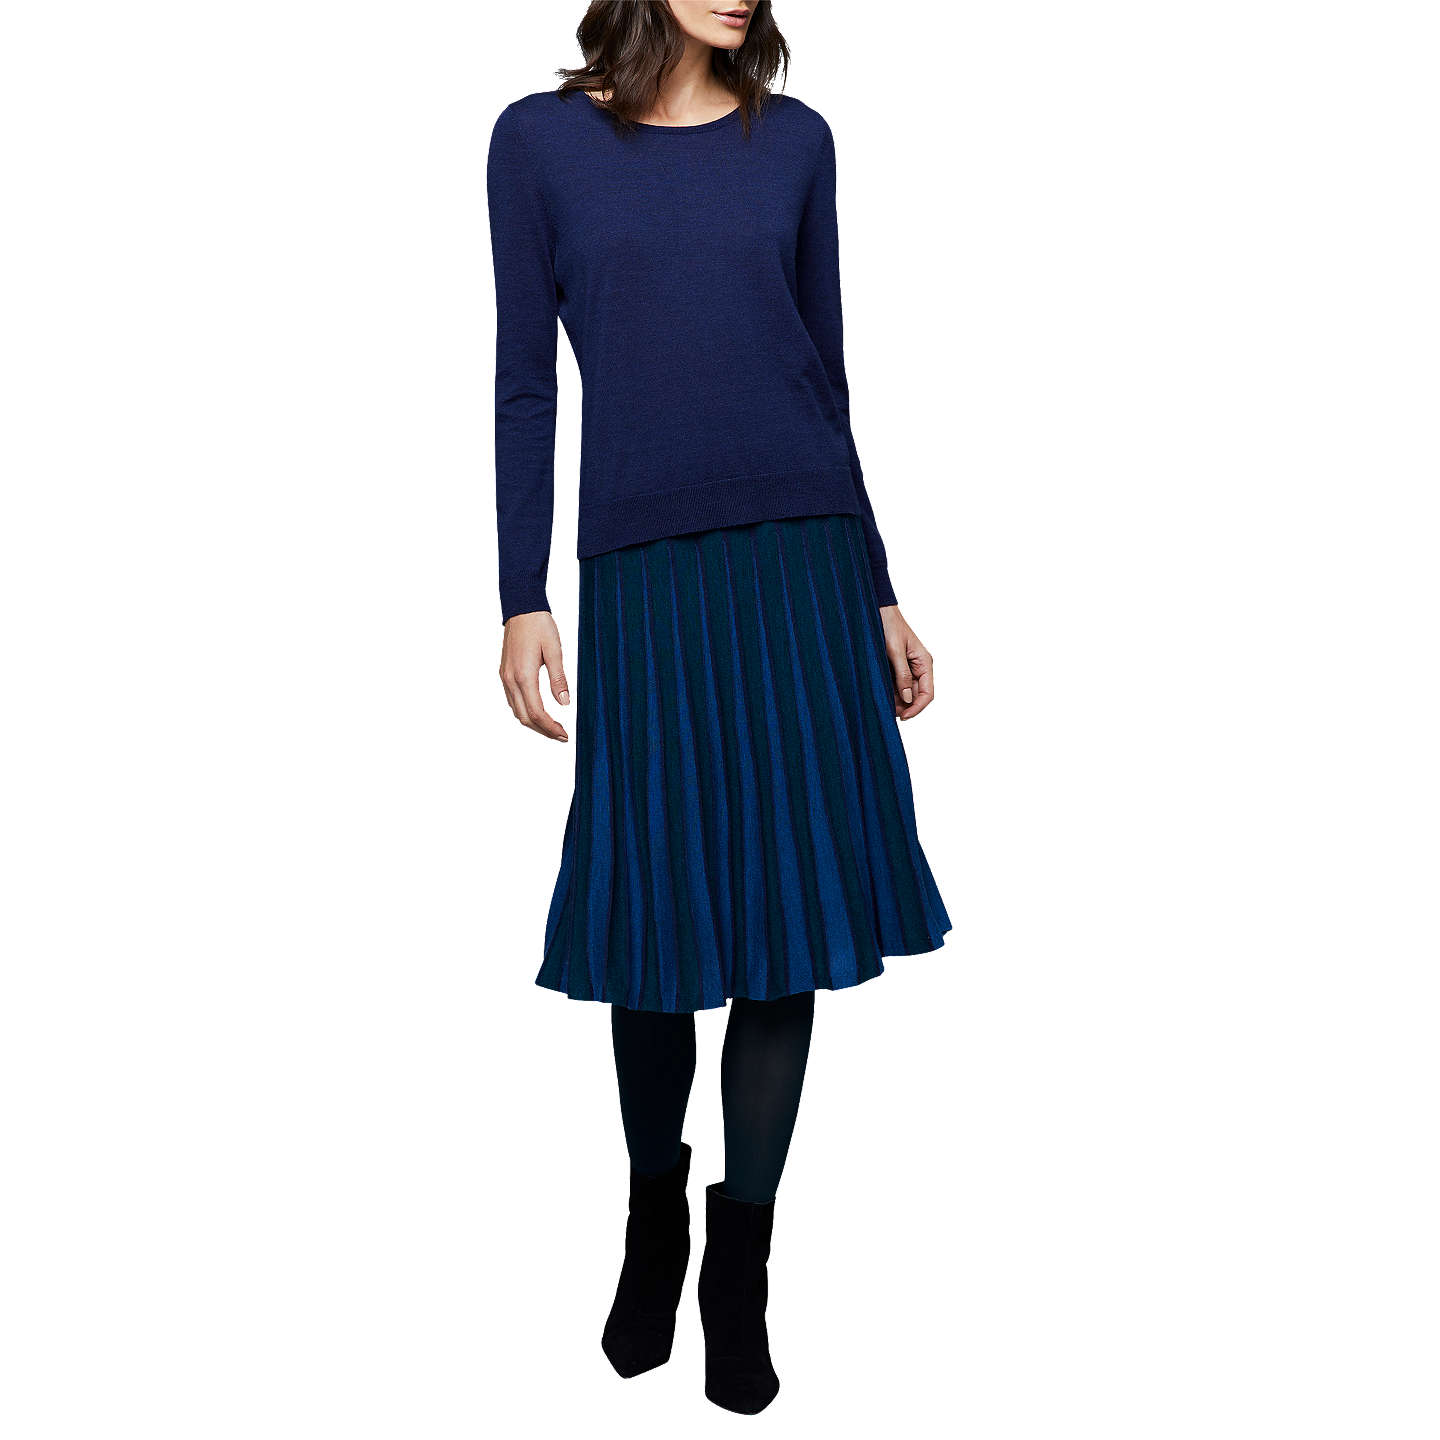 BuyEast Merino Pleat Stripe Skirt, Ink, S Online at johnlewis.com